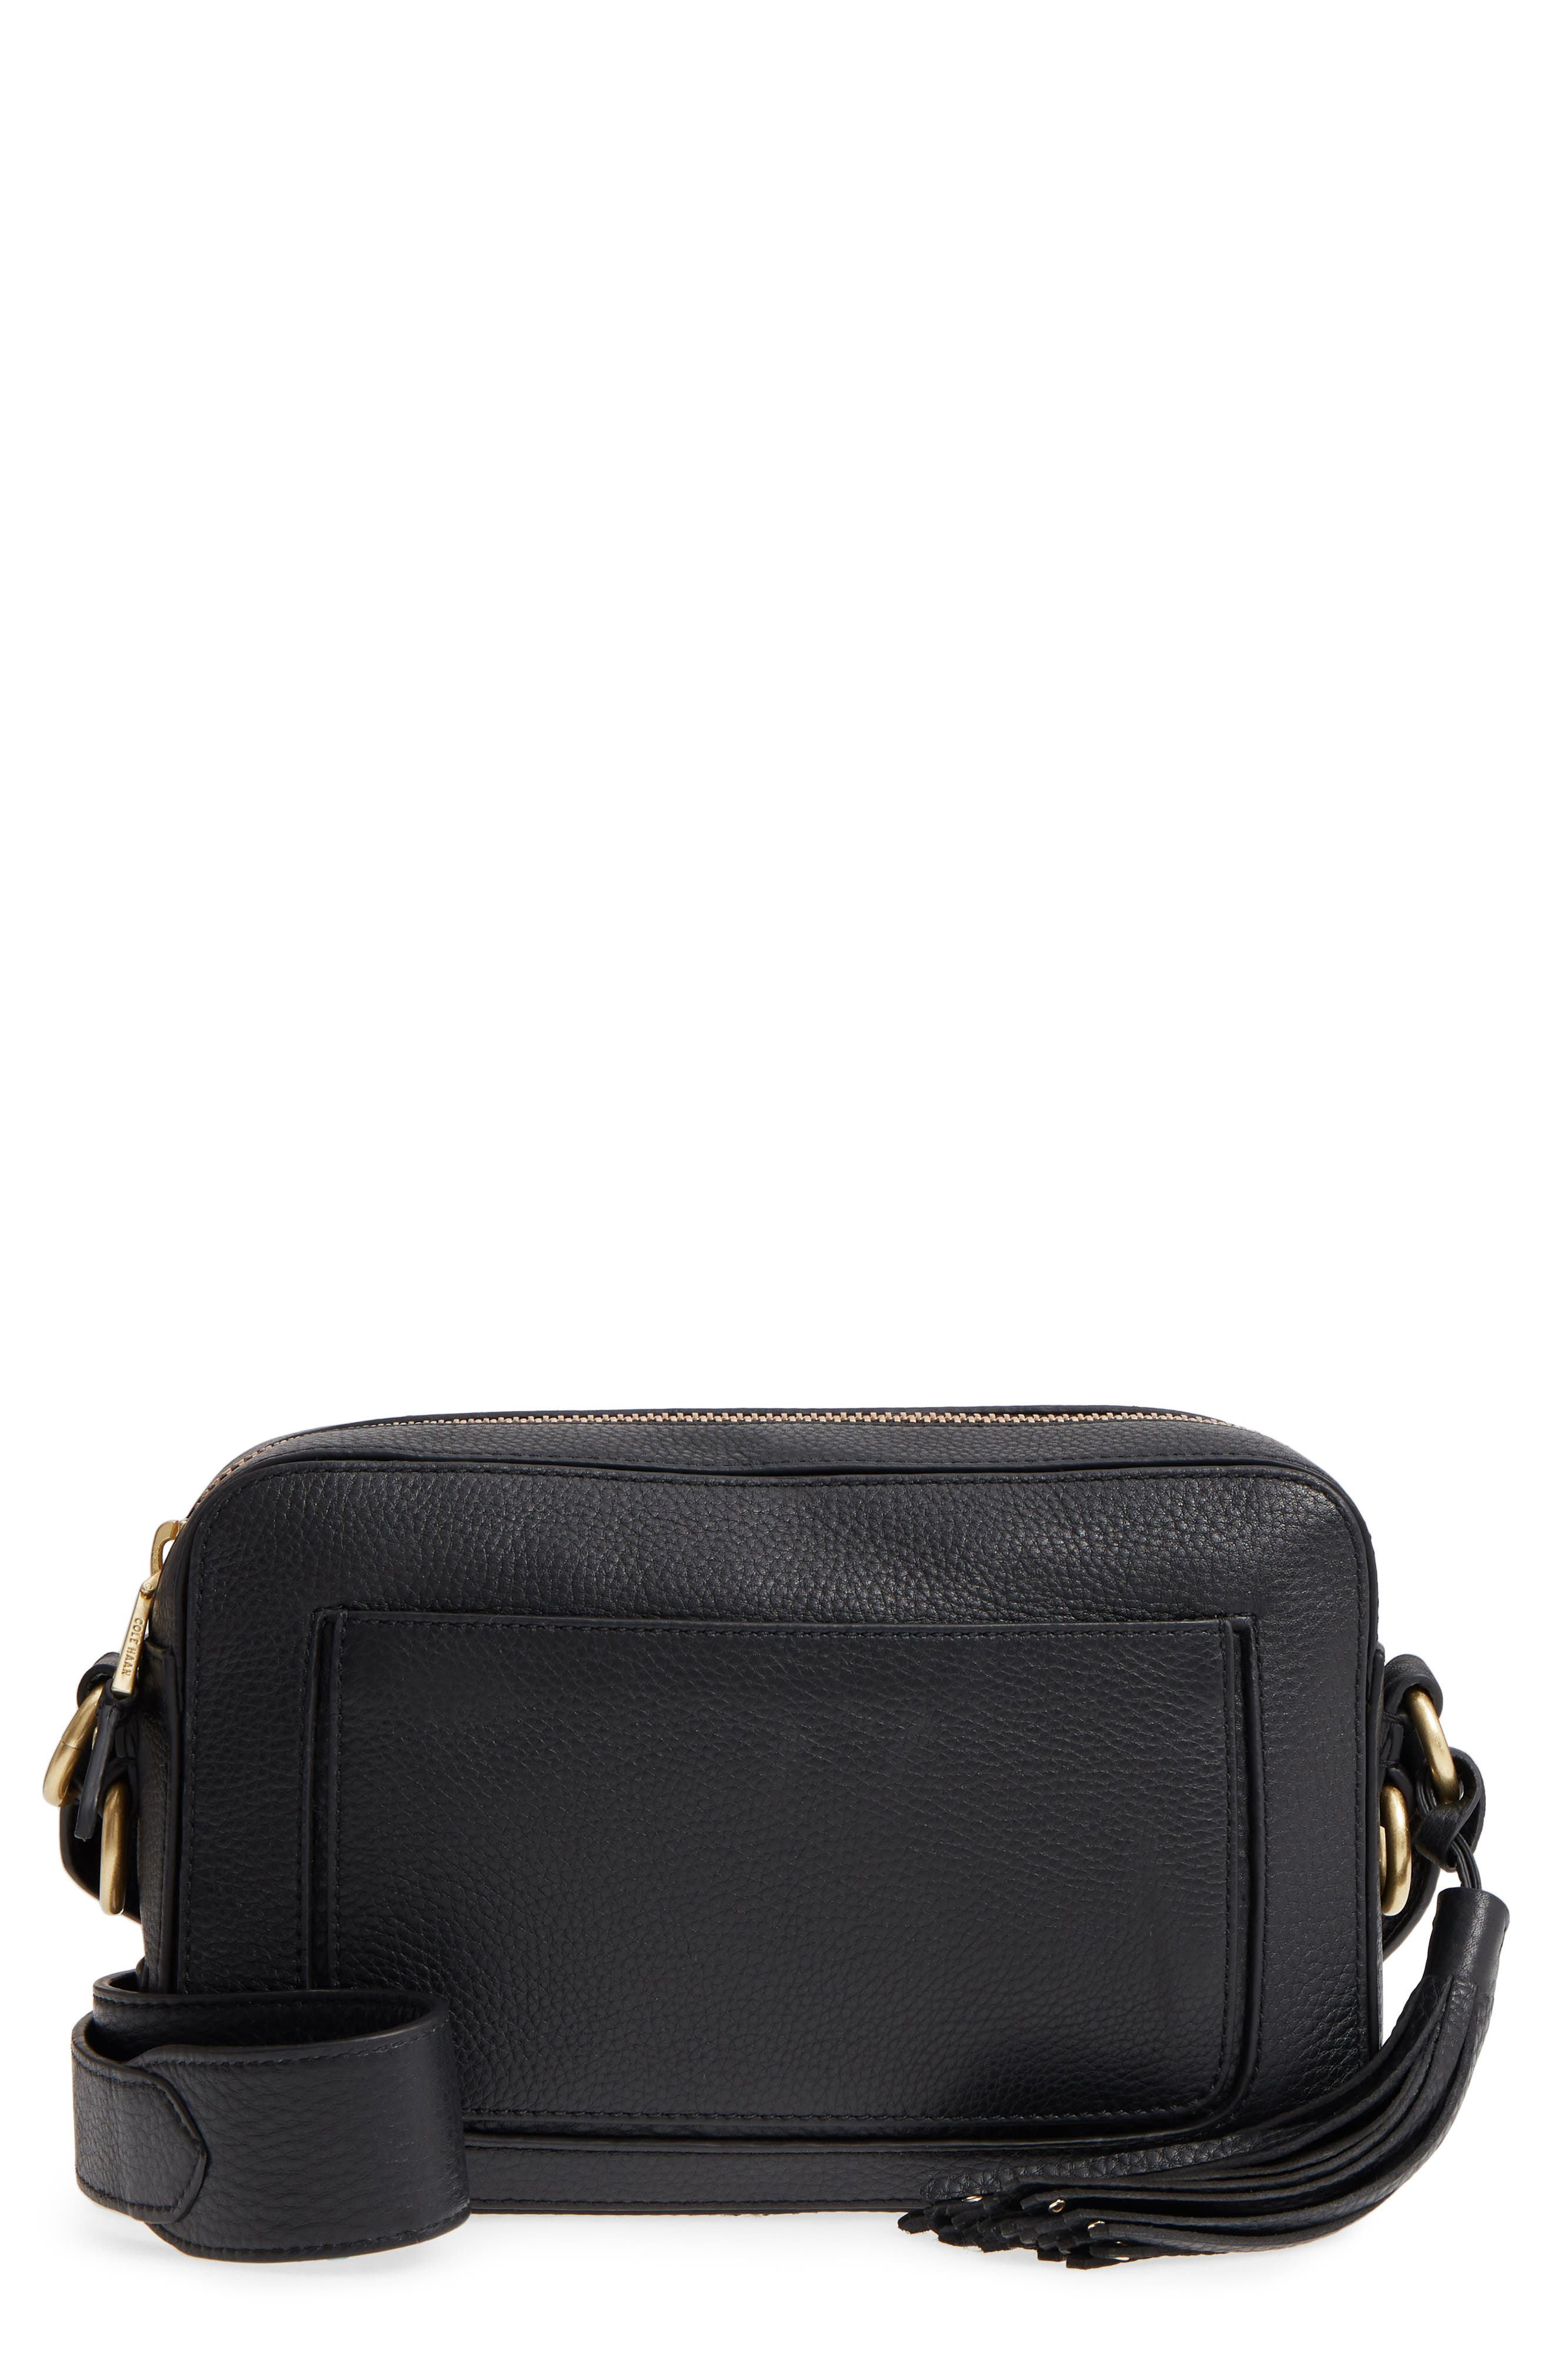 Cole Haan Cassidy RFID Pebbled Leather Camera Bag